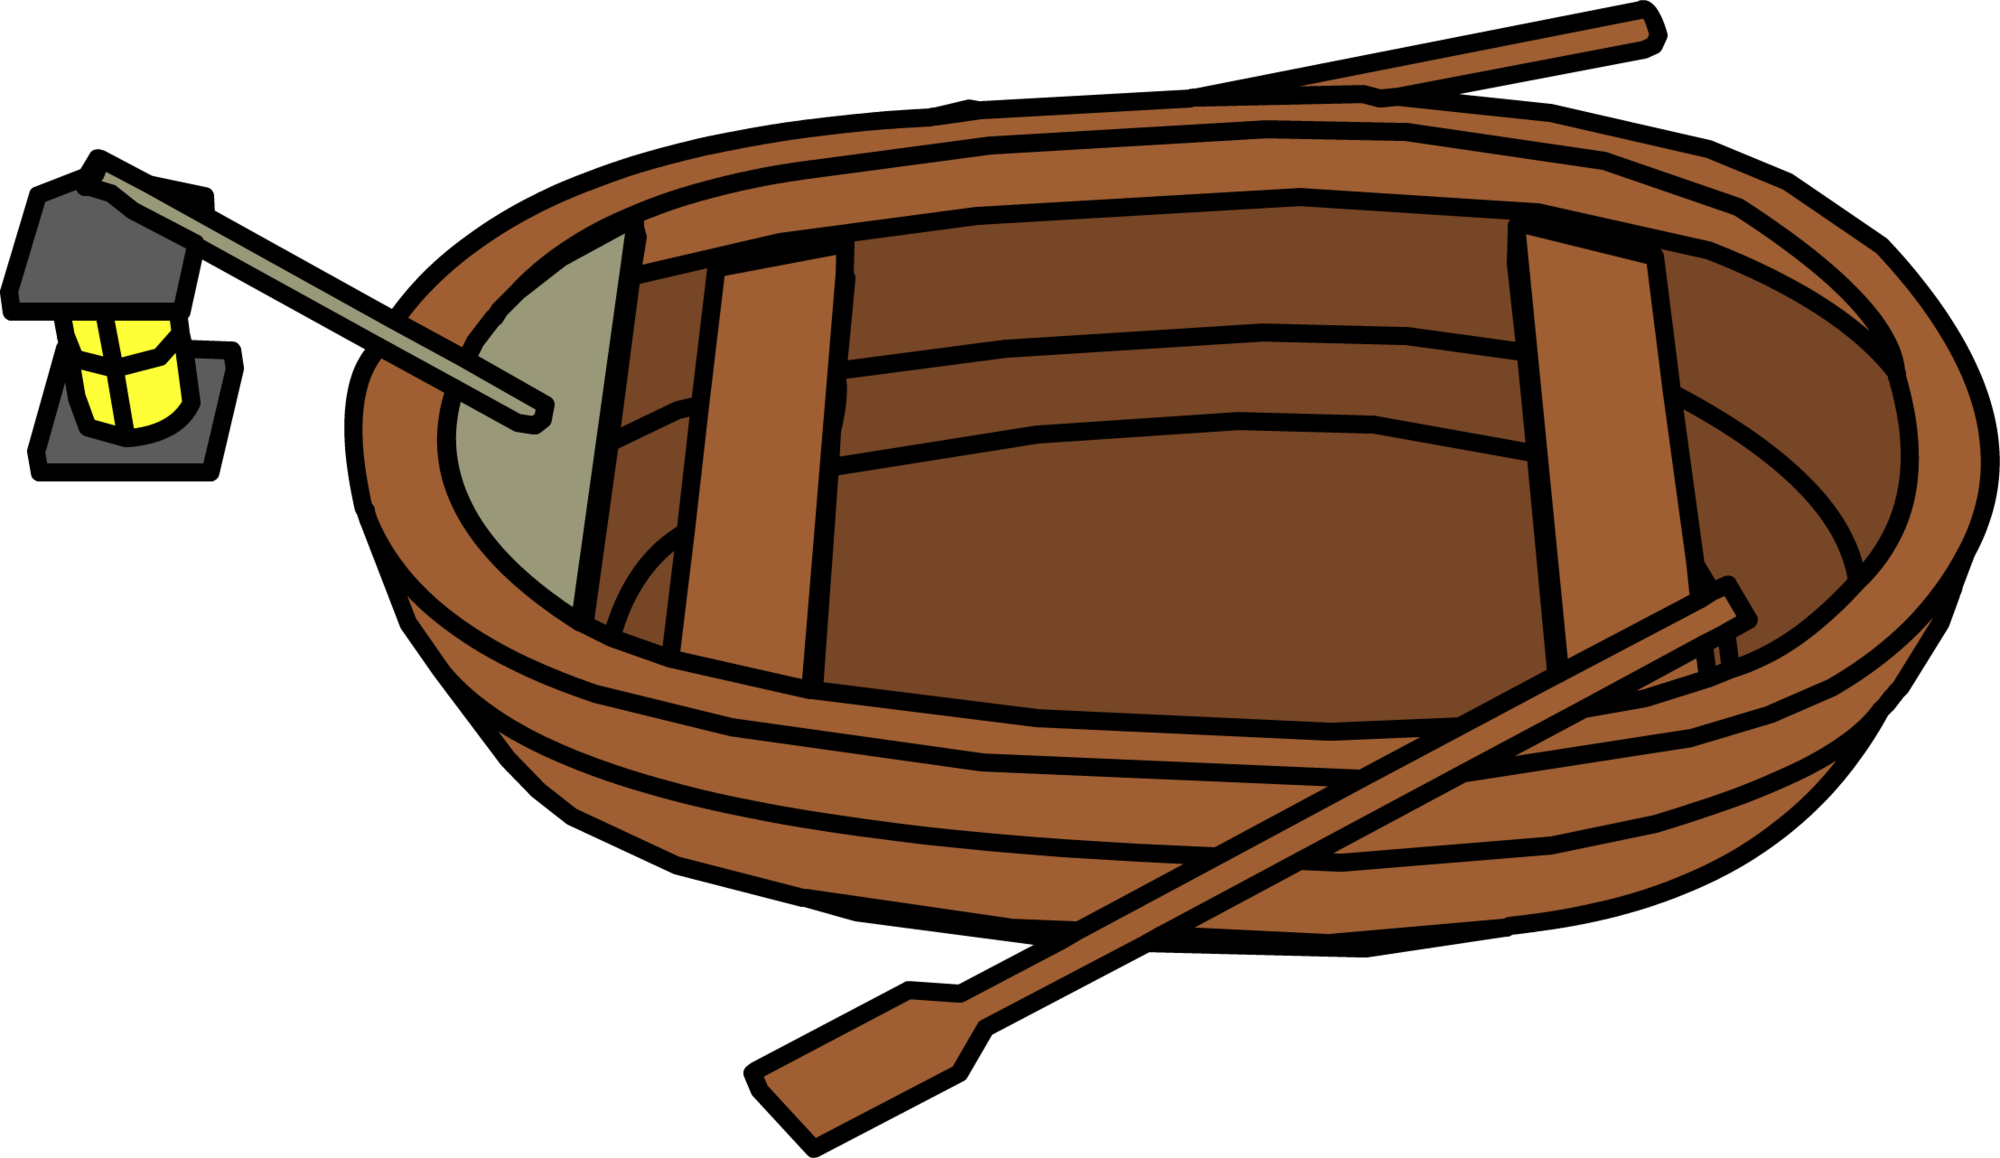 Row clipart lifeboat. Club penguin wiki fandom